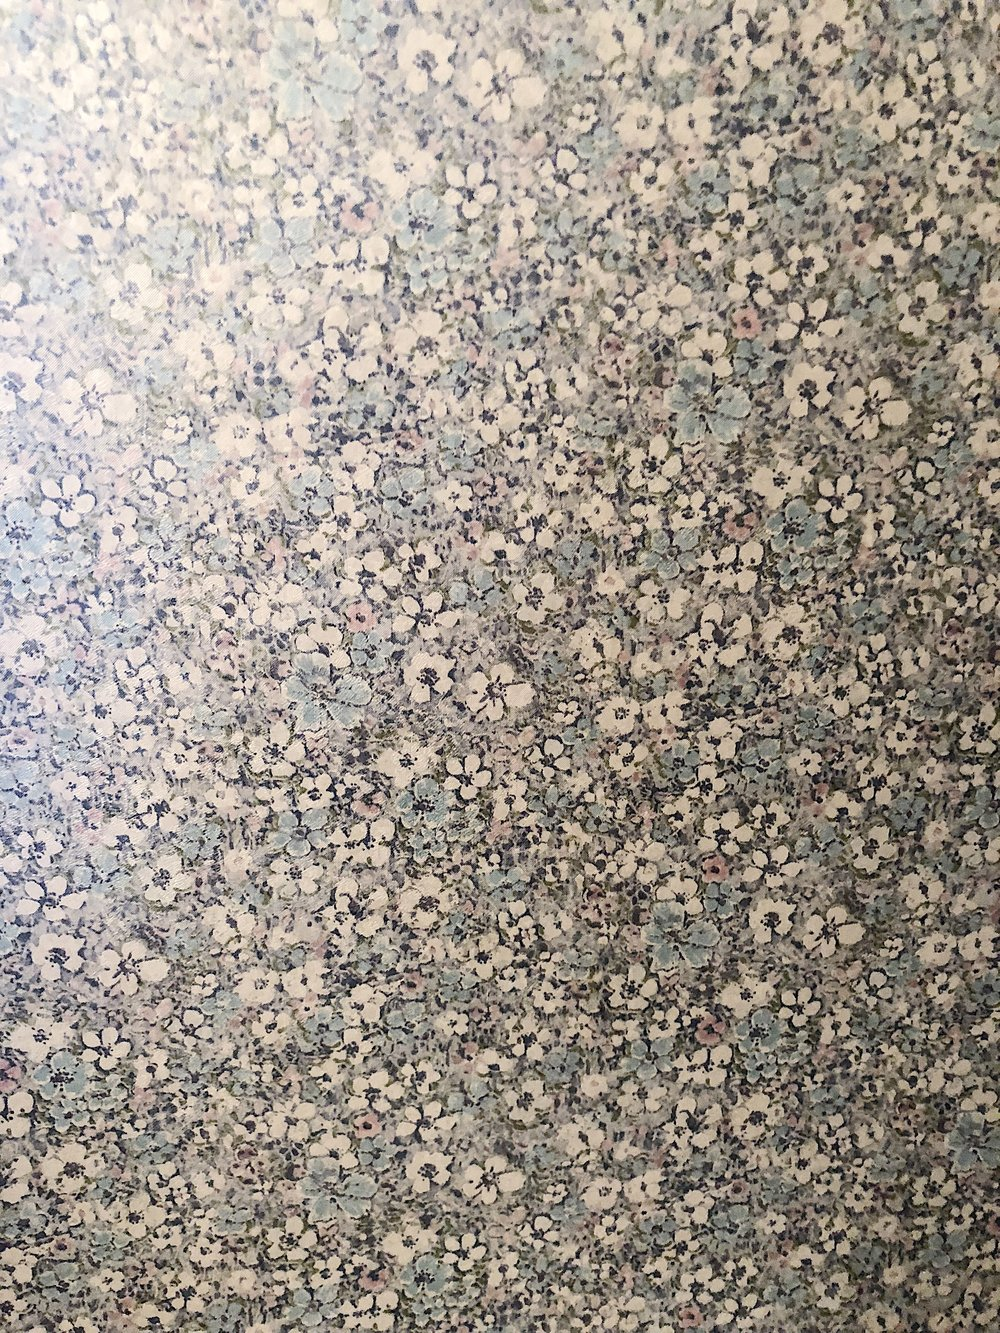 the beautiful hallway wallpaper.